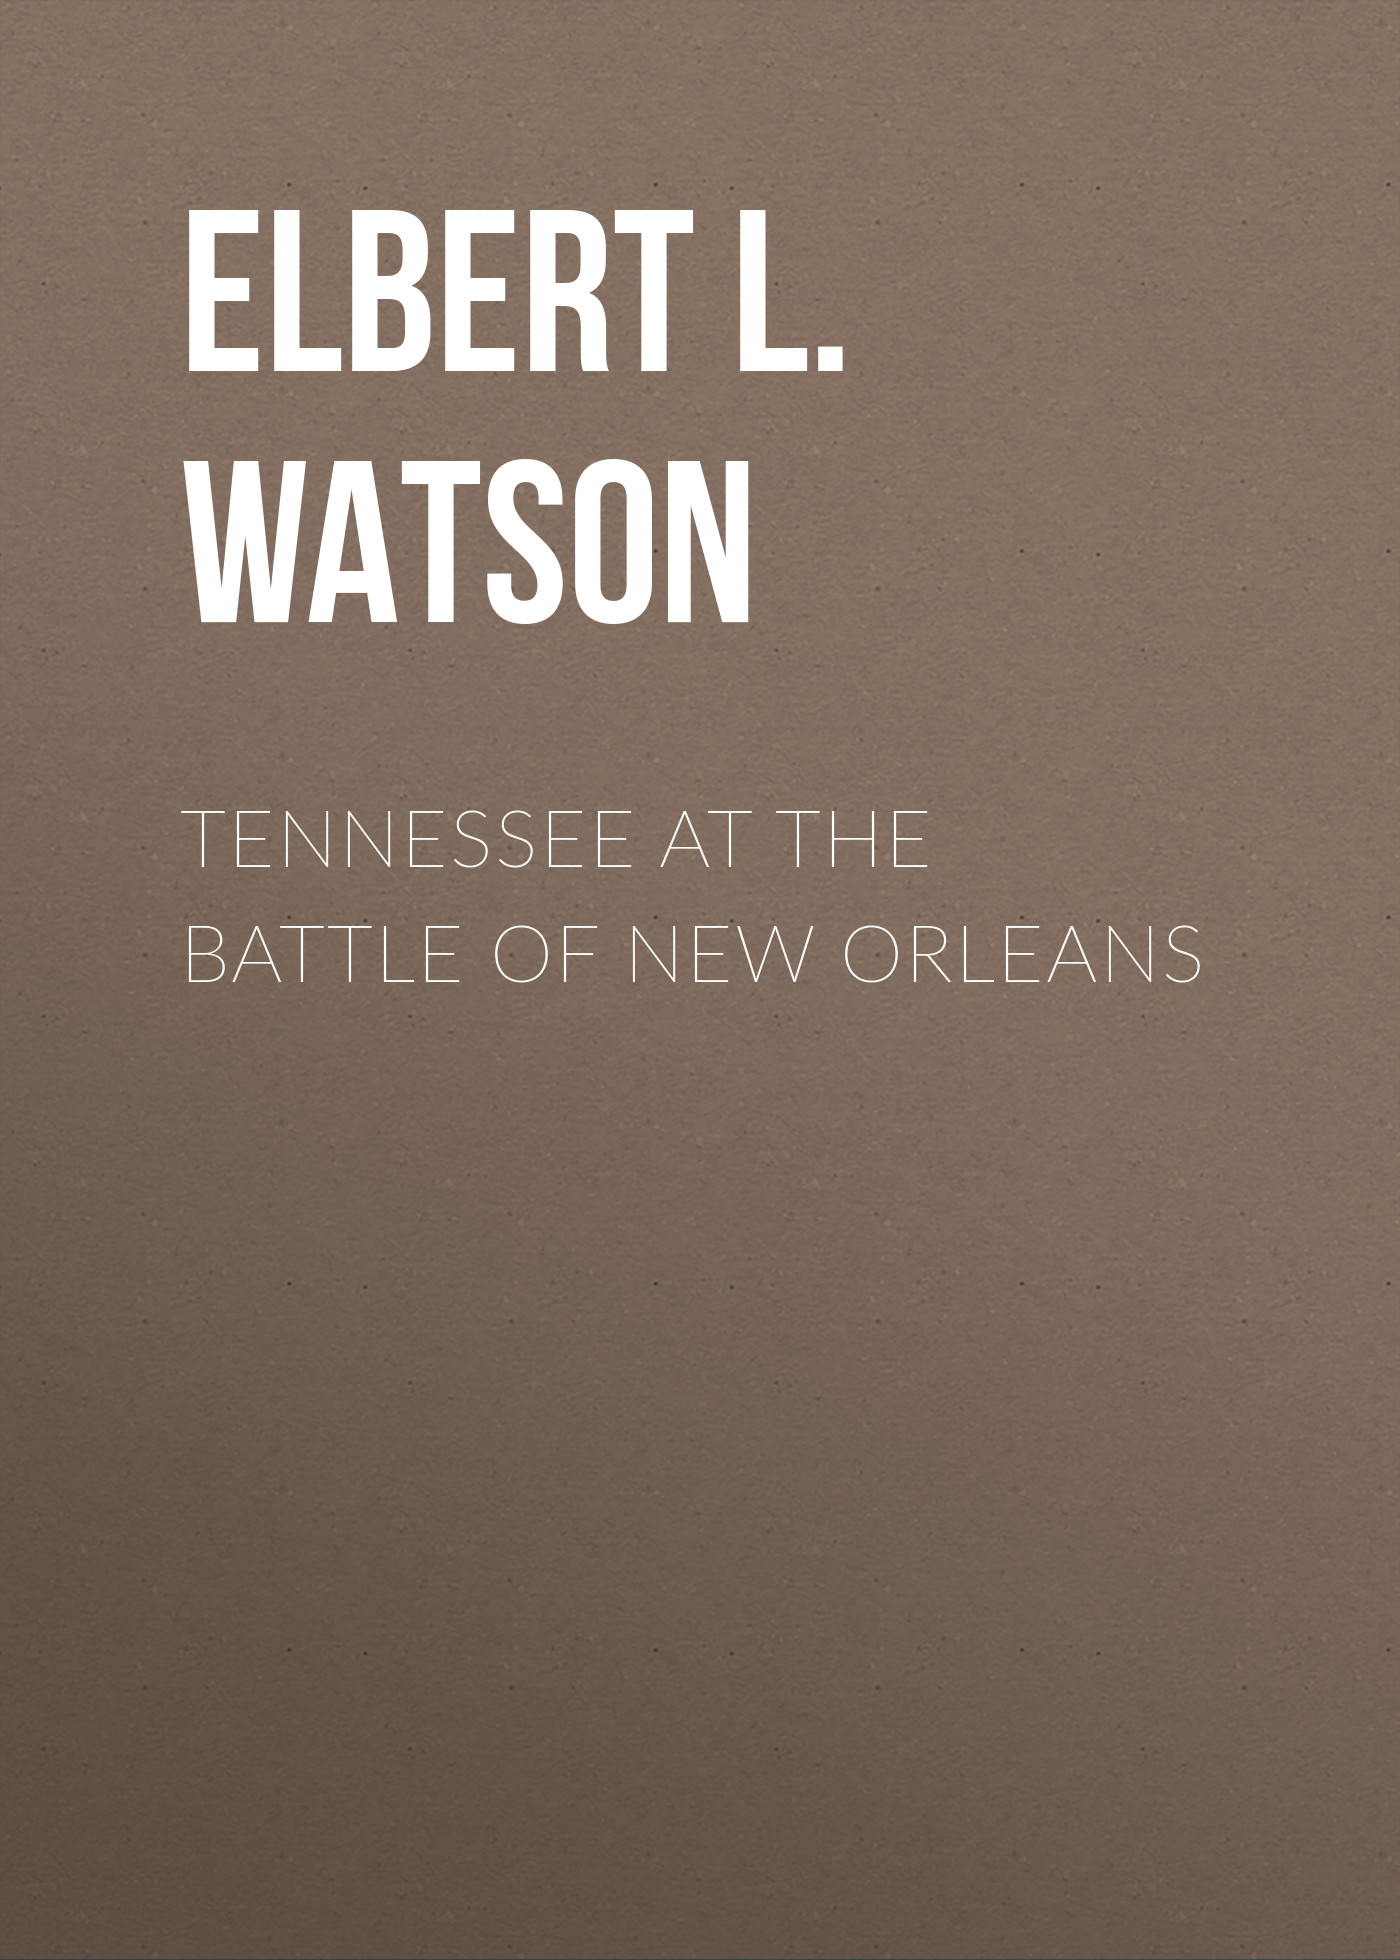 Elbert L. Watson Tennessee at the Battle of New Orleans new orleans saints garden gnome 11 thematic